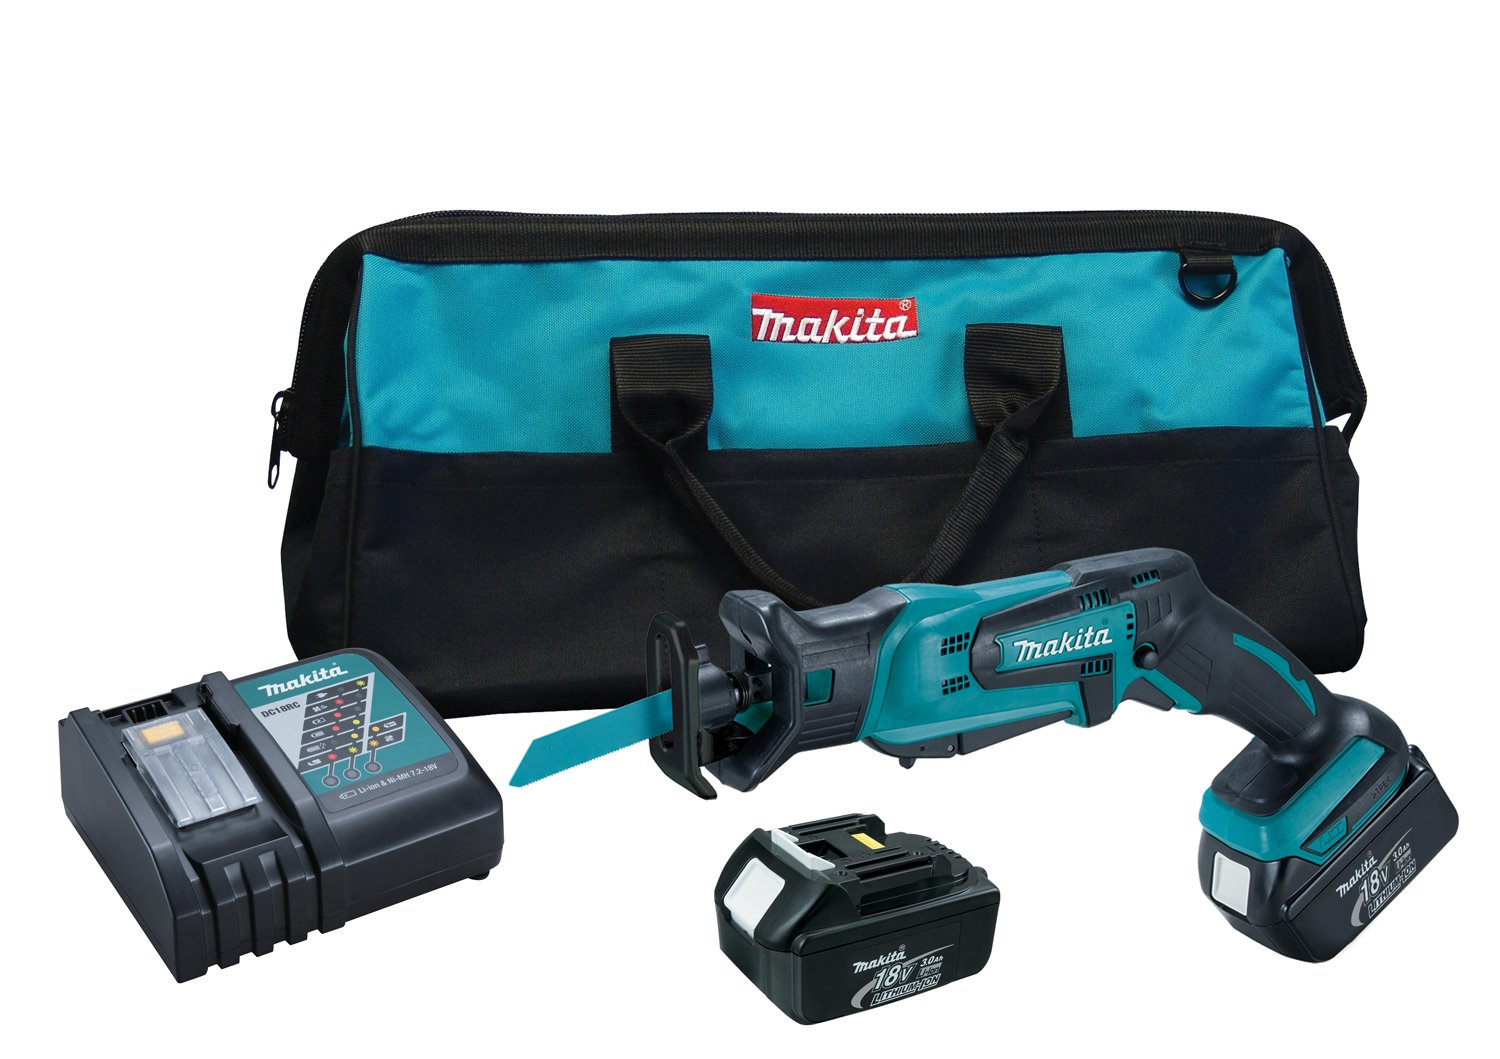 Makita XRJ01 18V LXT Lithium-Ion Cordless Compact Recipro Saw Kit Discontinued by Manufacturer